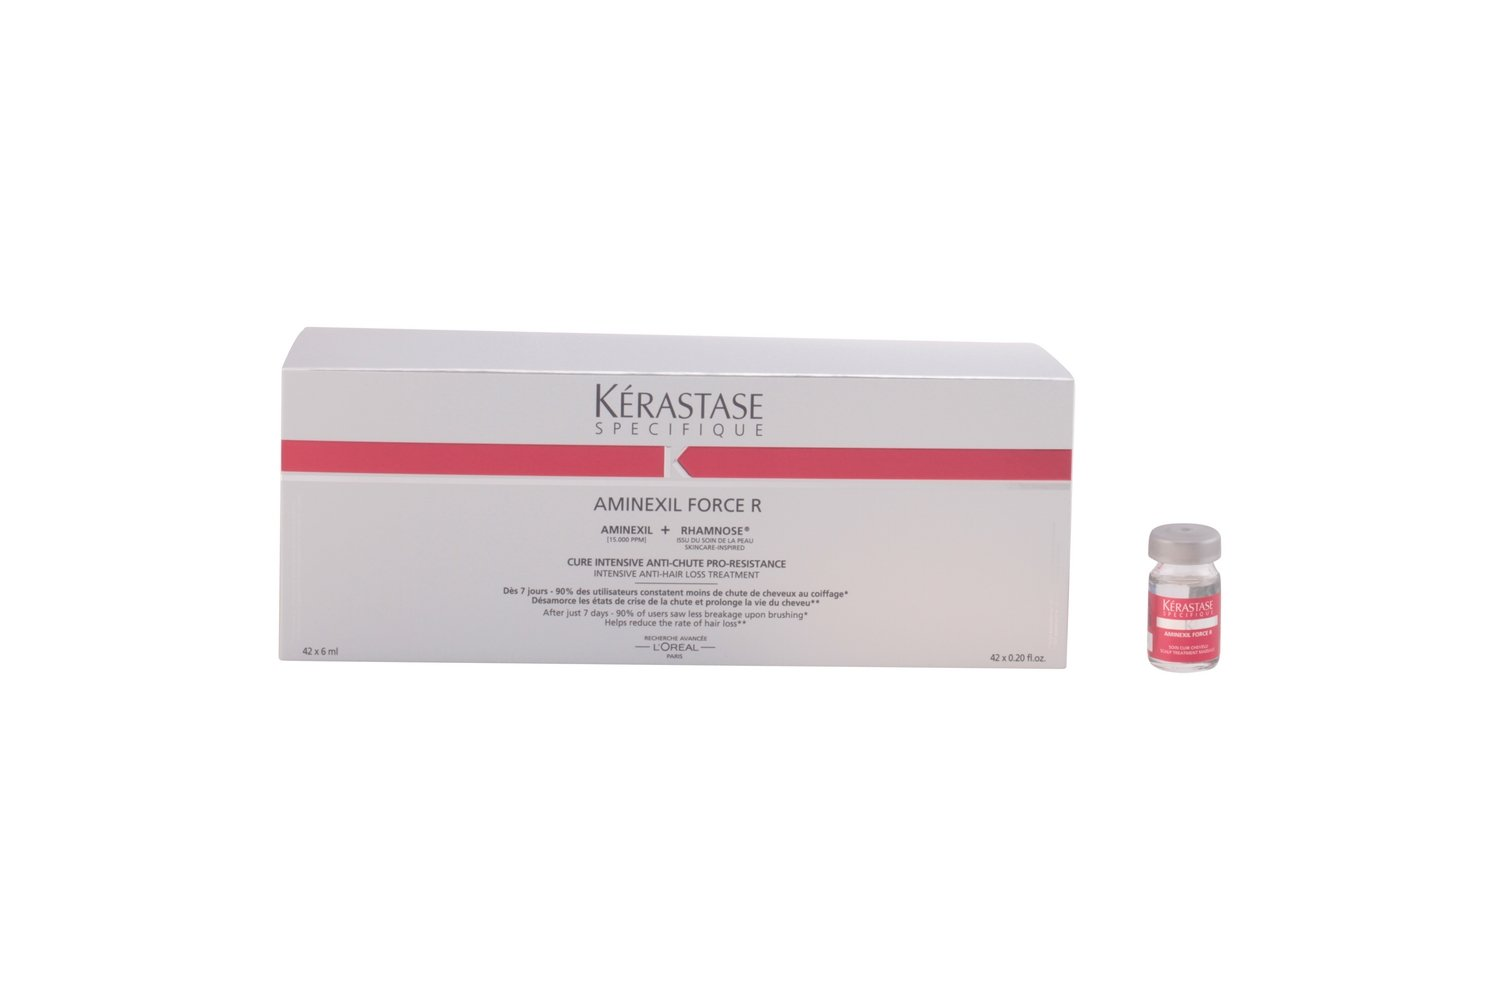 KERASTASE SPECIFIQUE aminexil force R traitement anti-chute 42 x 6 ml: Amazon.es: Belleza